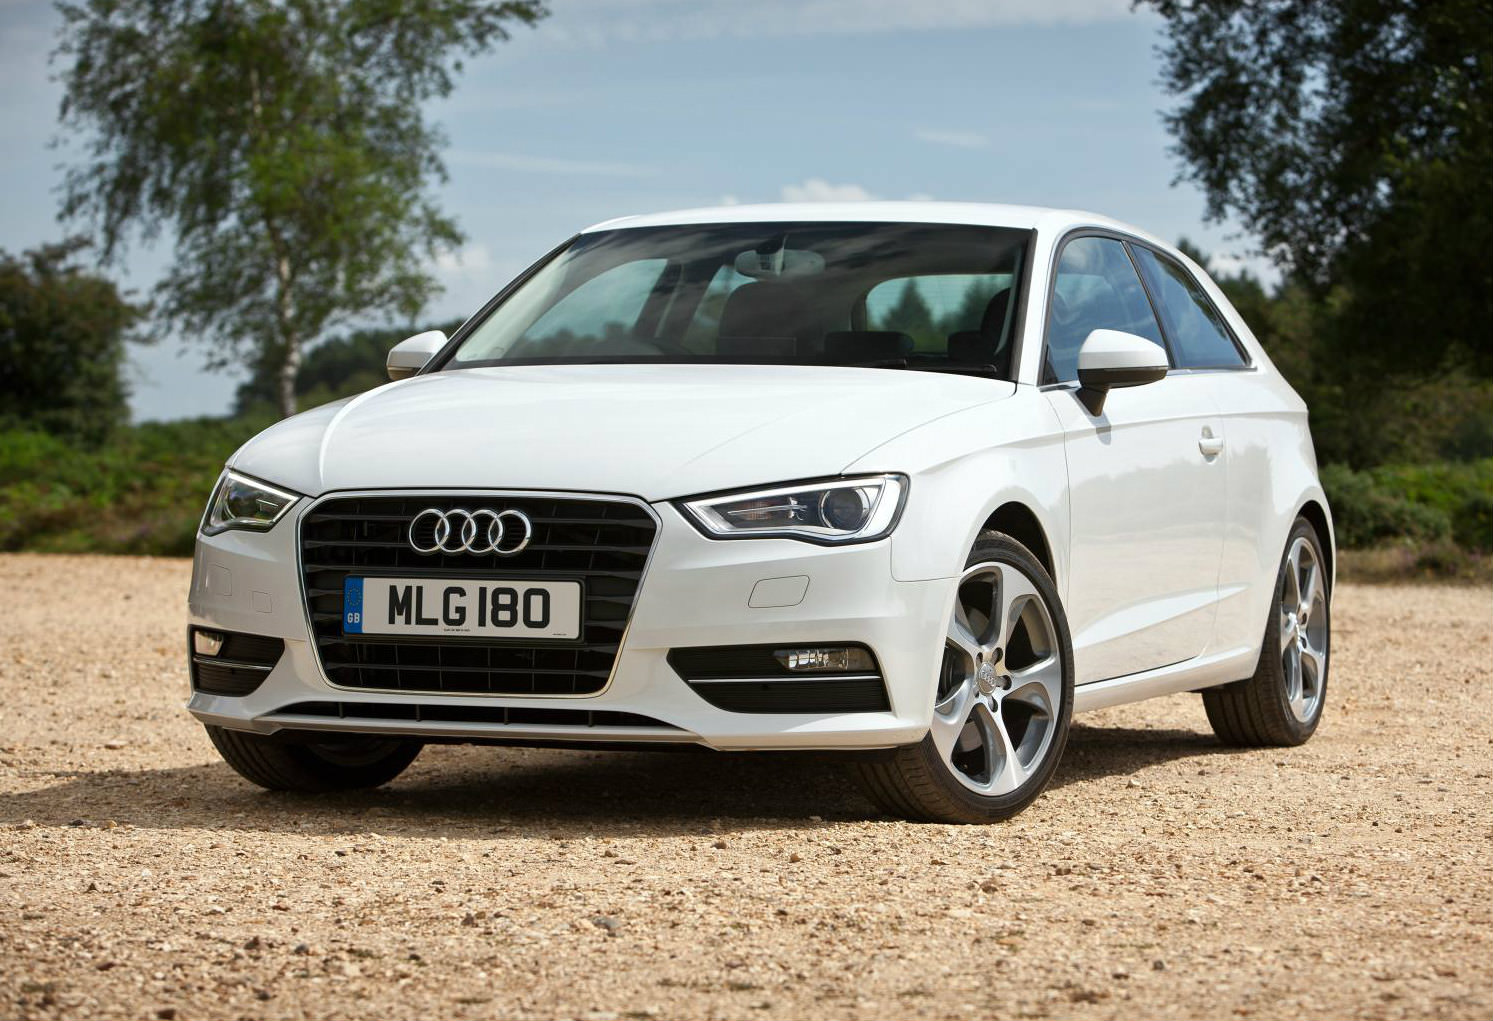 blog/375/Everything you need to know about buying a used Audi A3